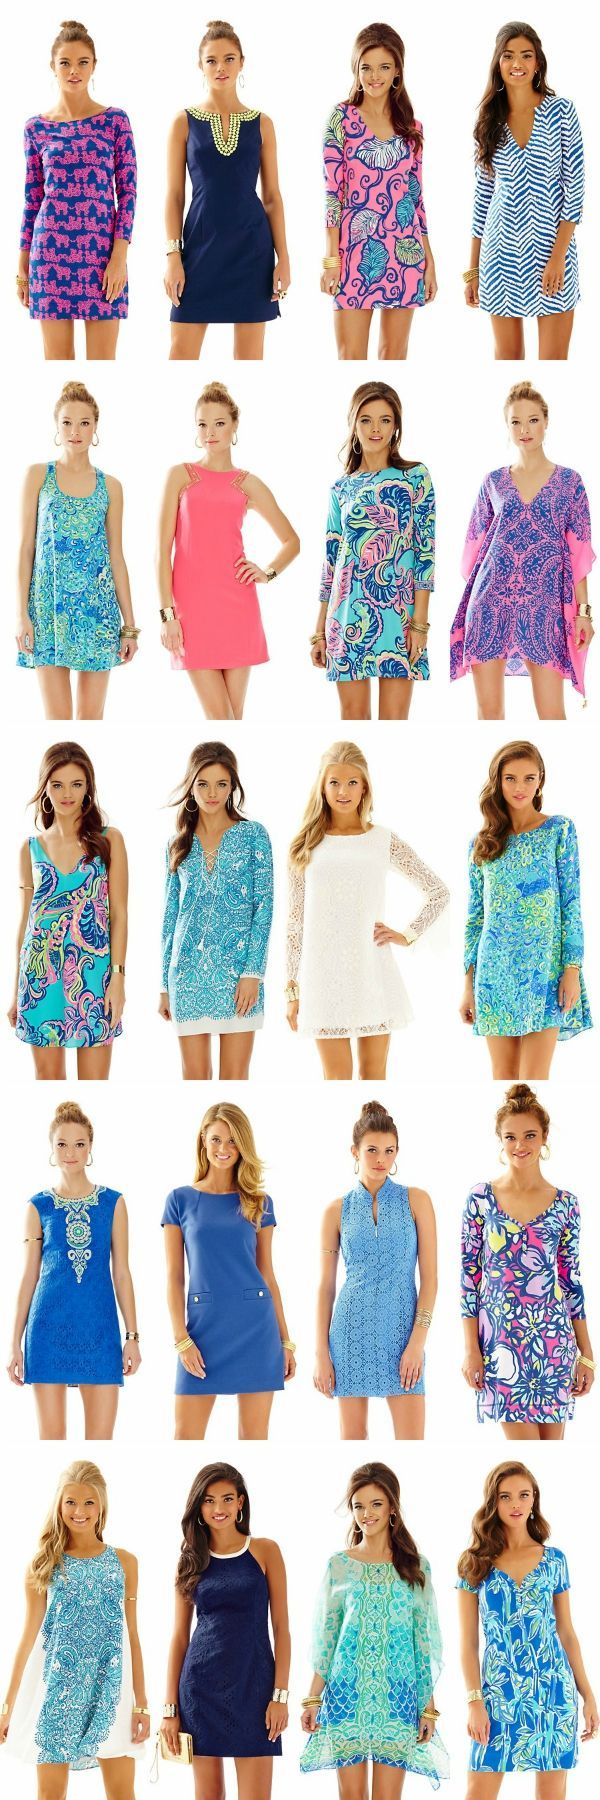 Lilly Pulitzer, just go ahead and take all of my money! The new fall collection is PERFECT.